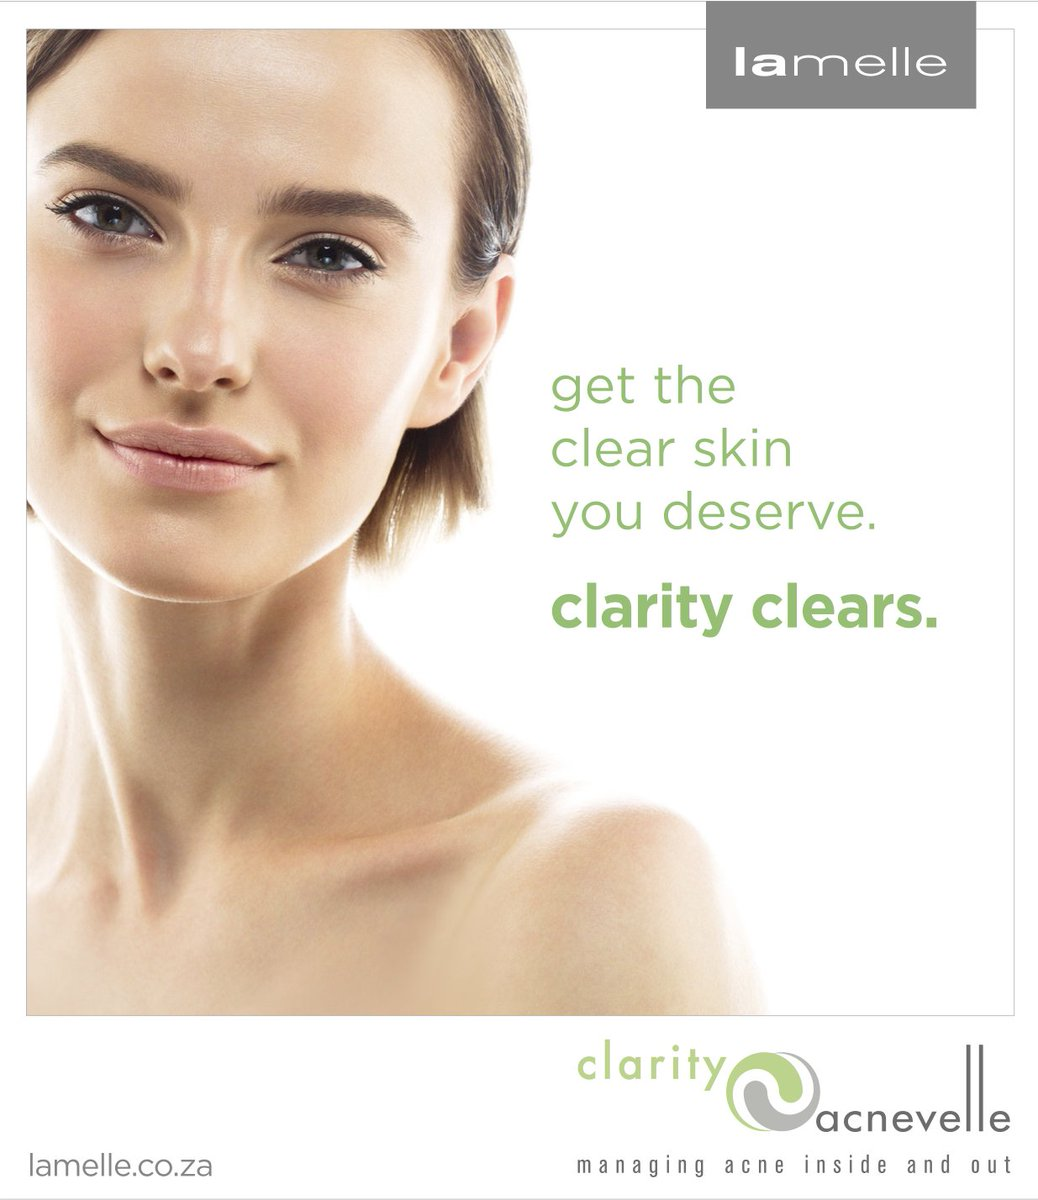 Get the clear skin you deserve with Clarity. #ClarityClears